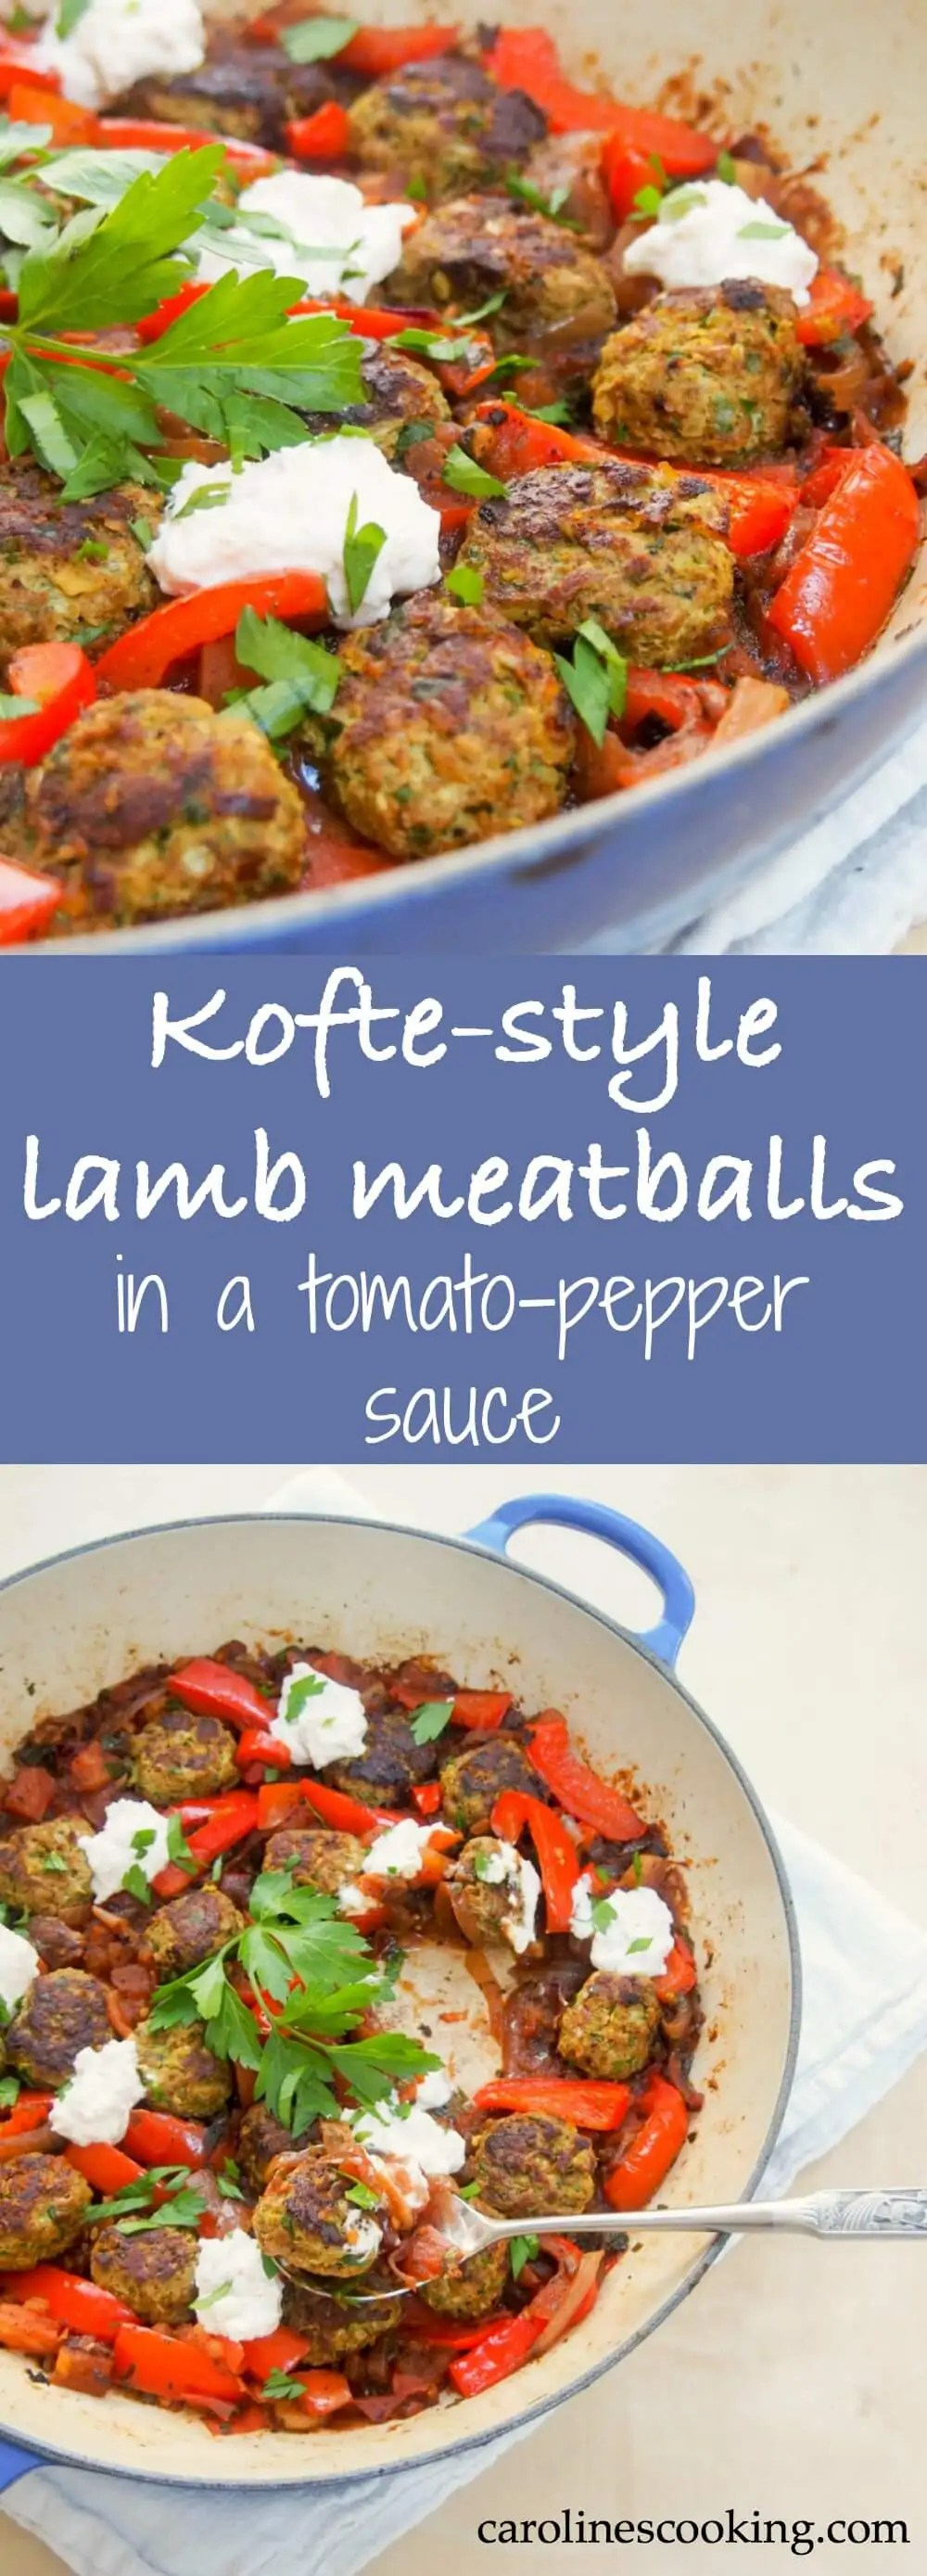 These kofte-style lamb meatballs are filled with delicious herbs, spices & pine nuts, then made better served in a tomato-pepper sauce with a feta-yogurt topping.They're great for brunch, lunch or dinner. Tasty comfort food!